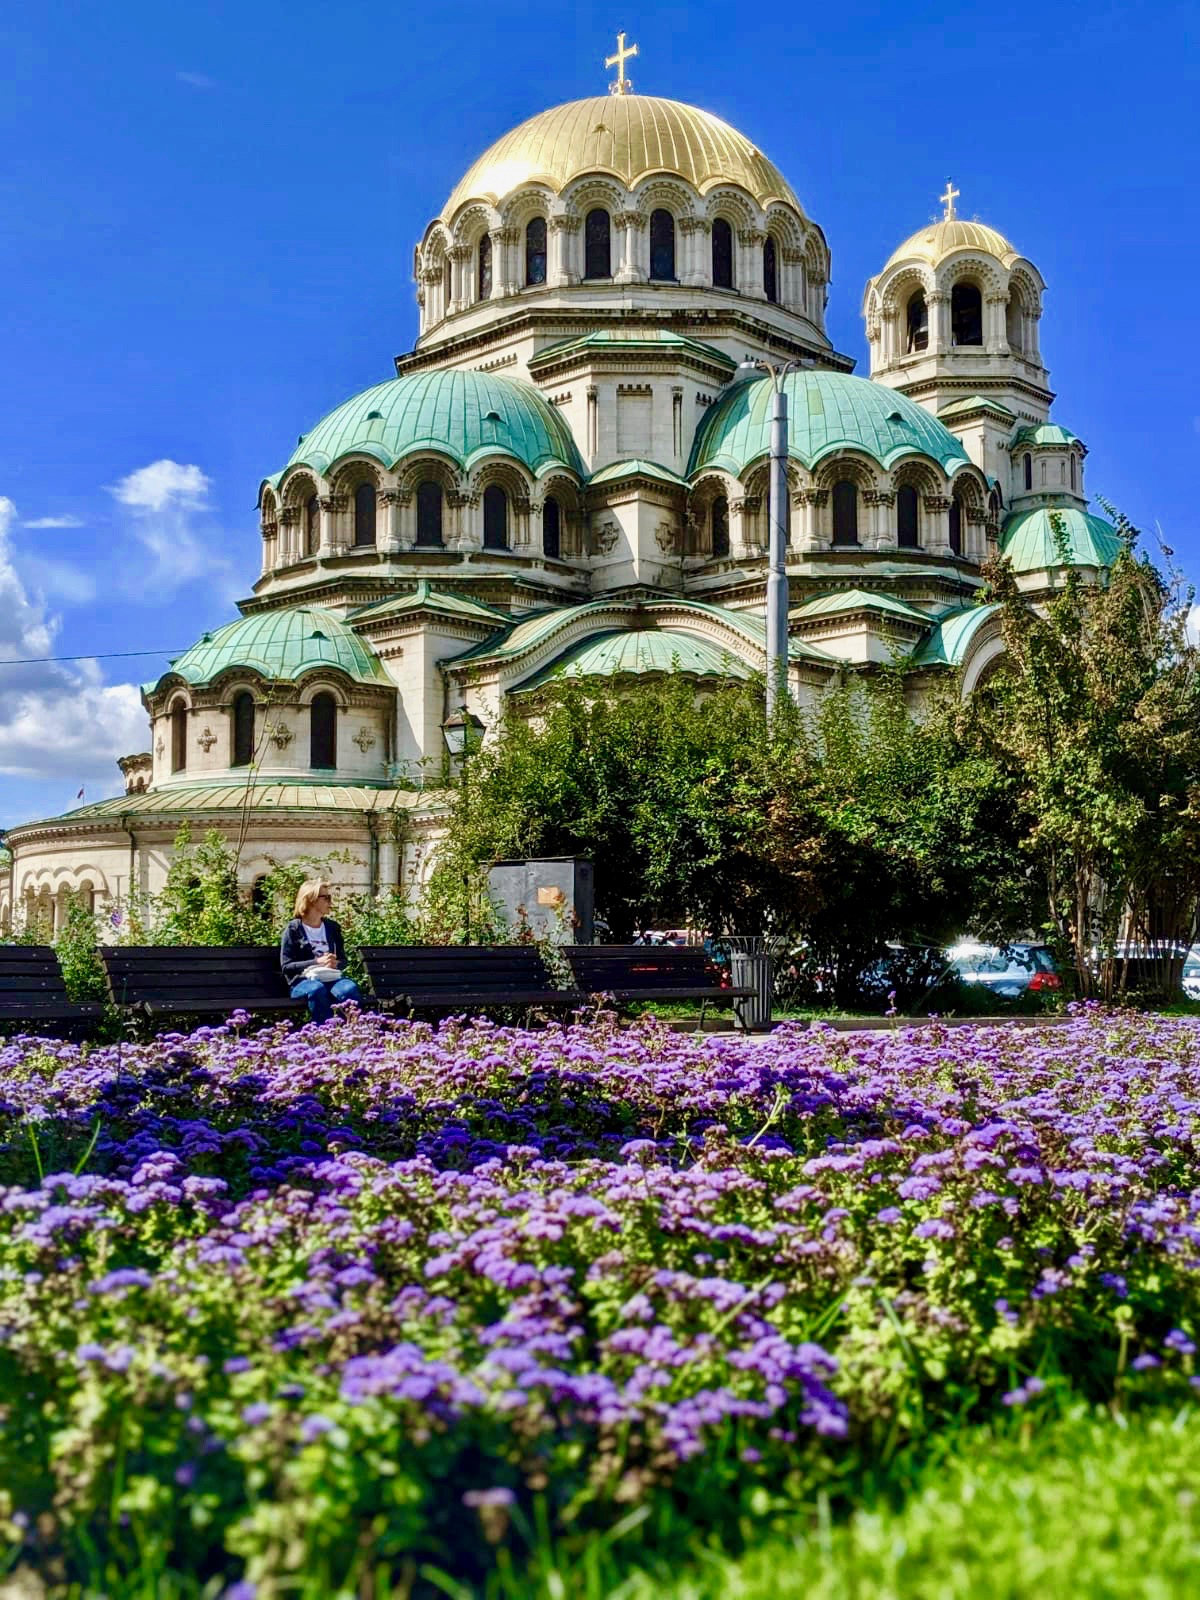 sofia city break: A picture of the Alexander Nevsky cathedral with purple flowers in the foreground